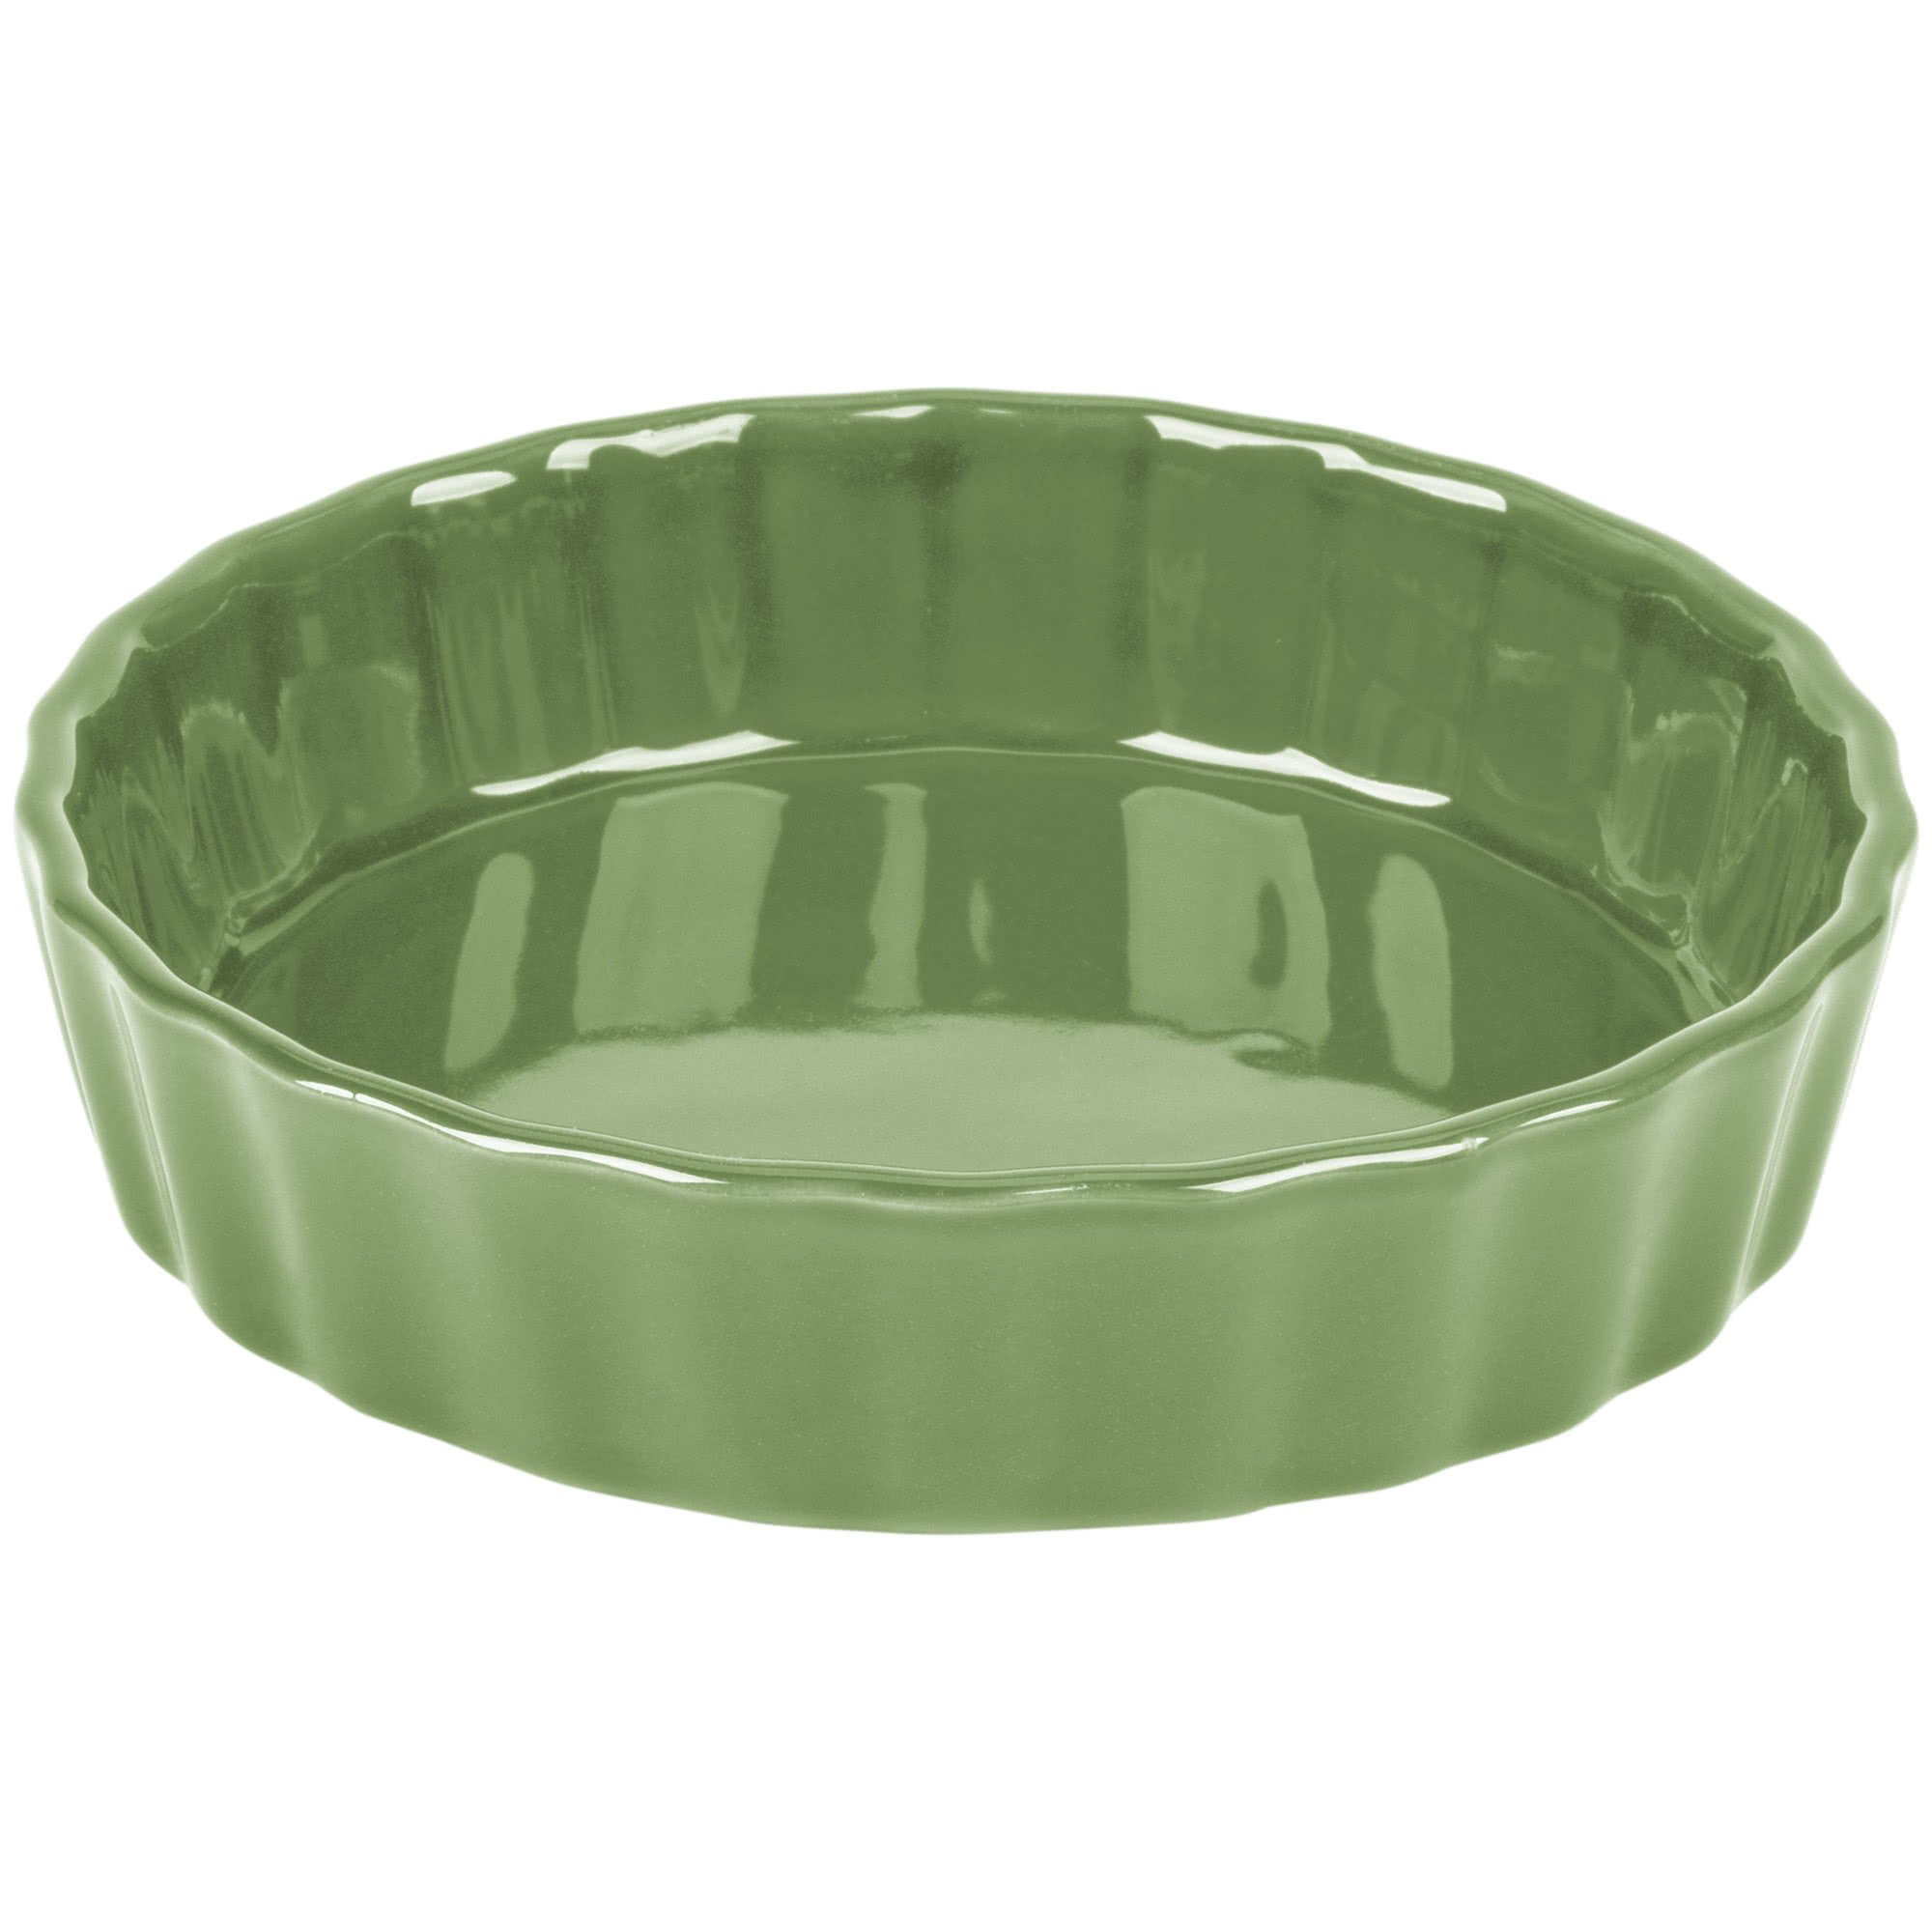 TableTop King QCD-5GRE Festiware Fluted Quiche Dish 5.5 oz. - Green - 24/Case by TableTop King (Image #1)